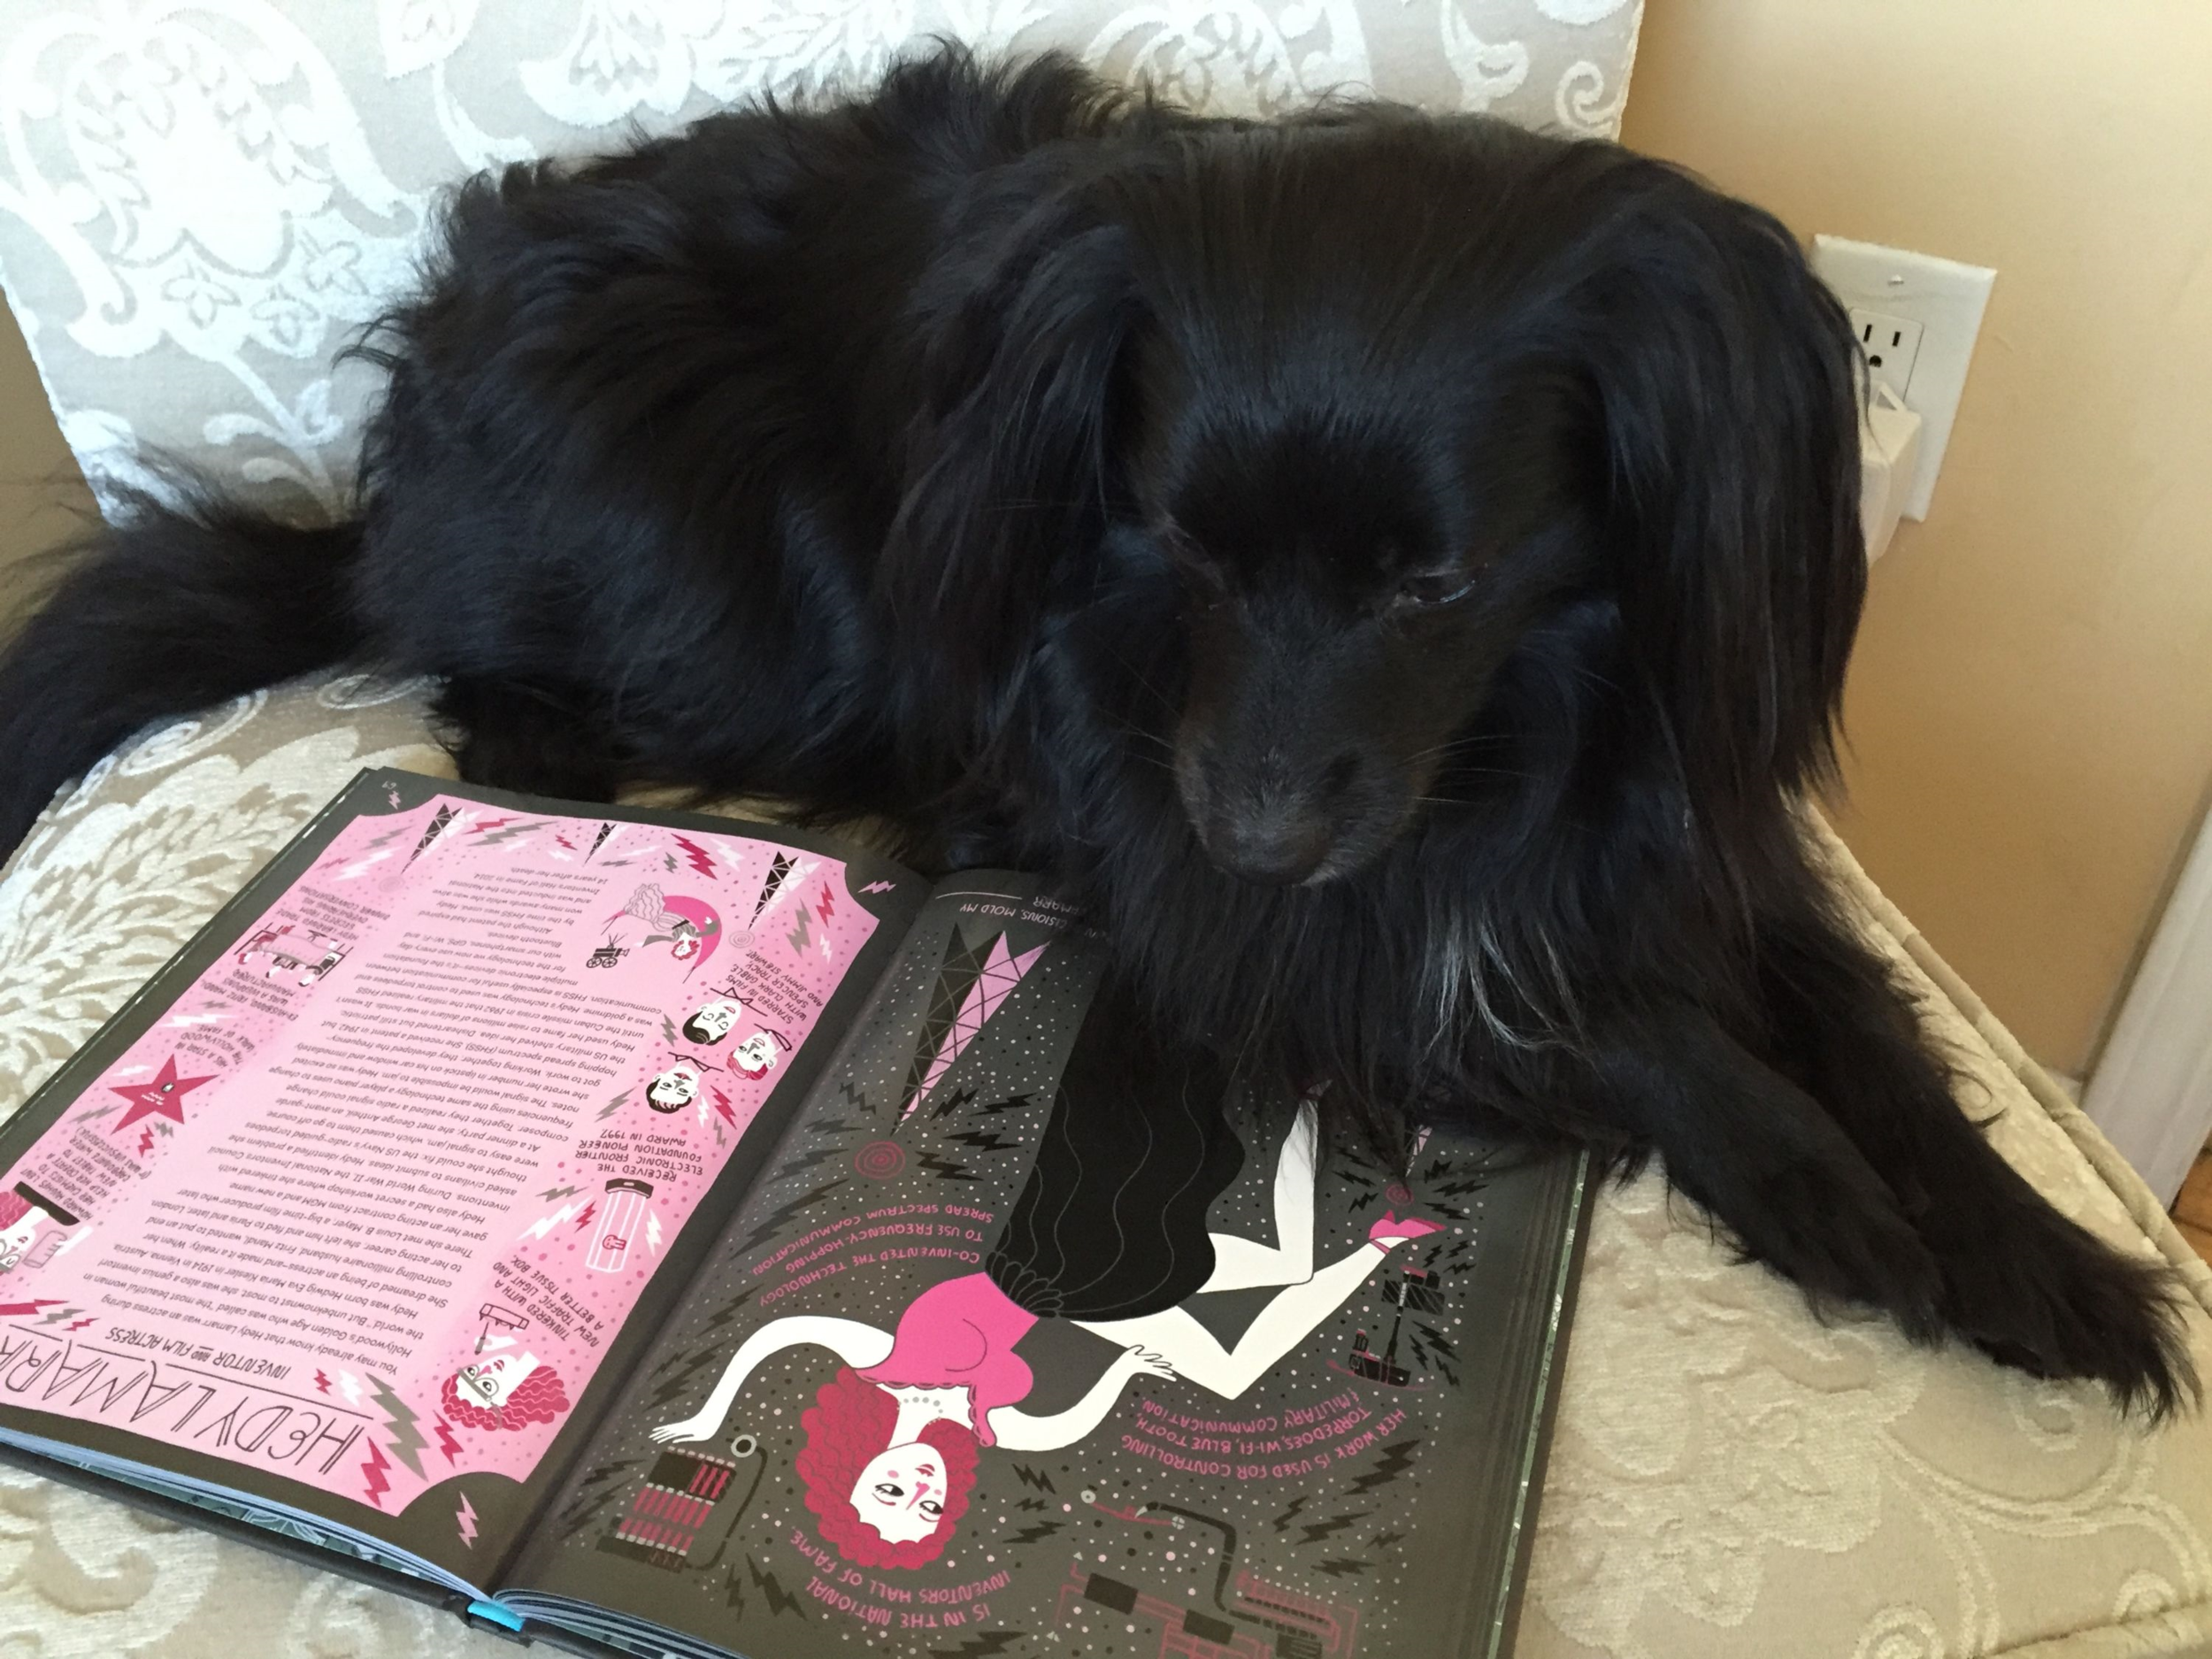 Did I take a picture of my dog reading this book? You bet I did. Why wouldn't I? Credit: KATIE MCKISSICK